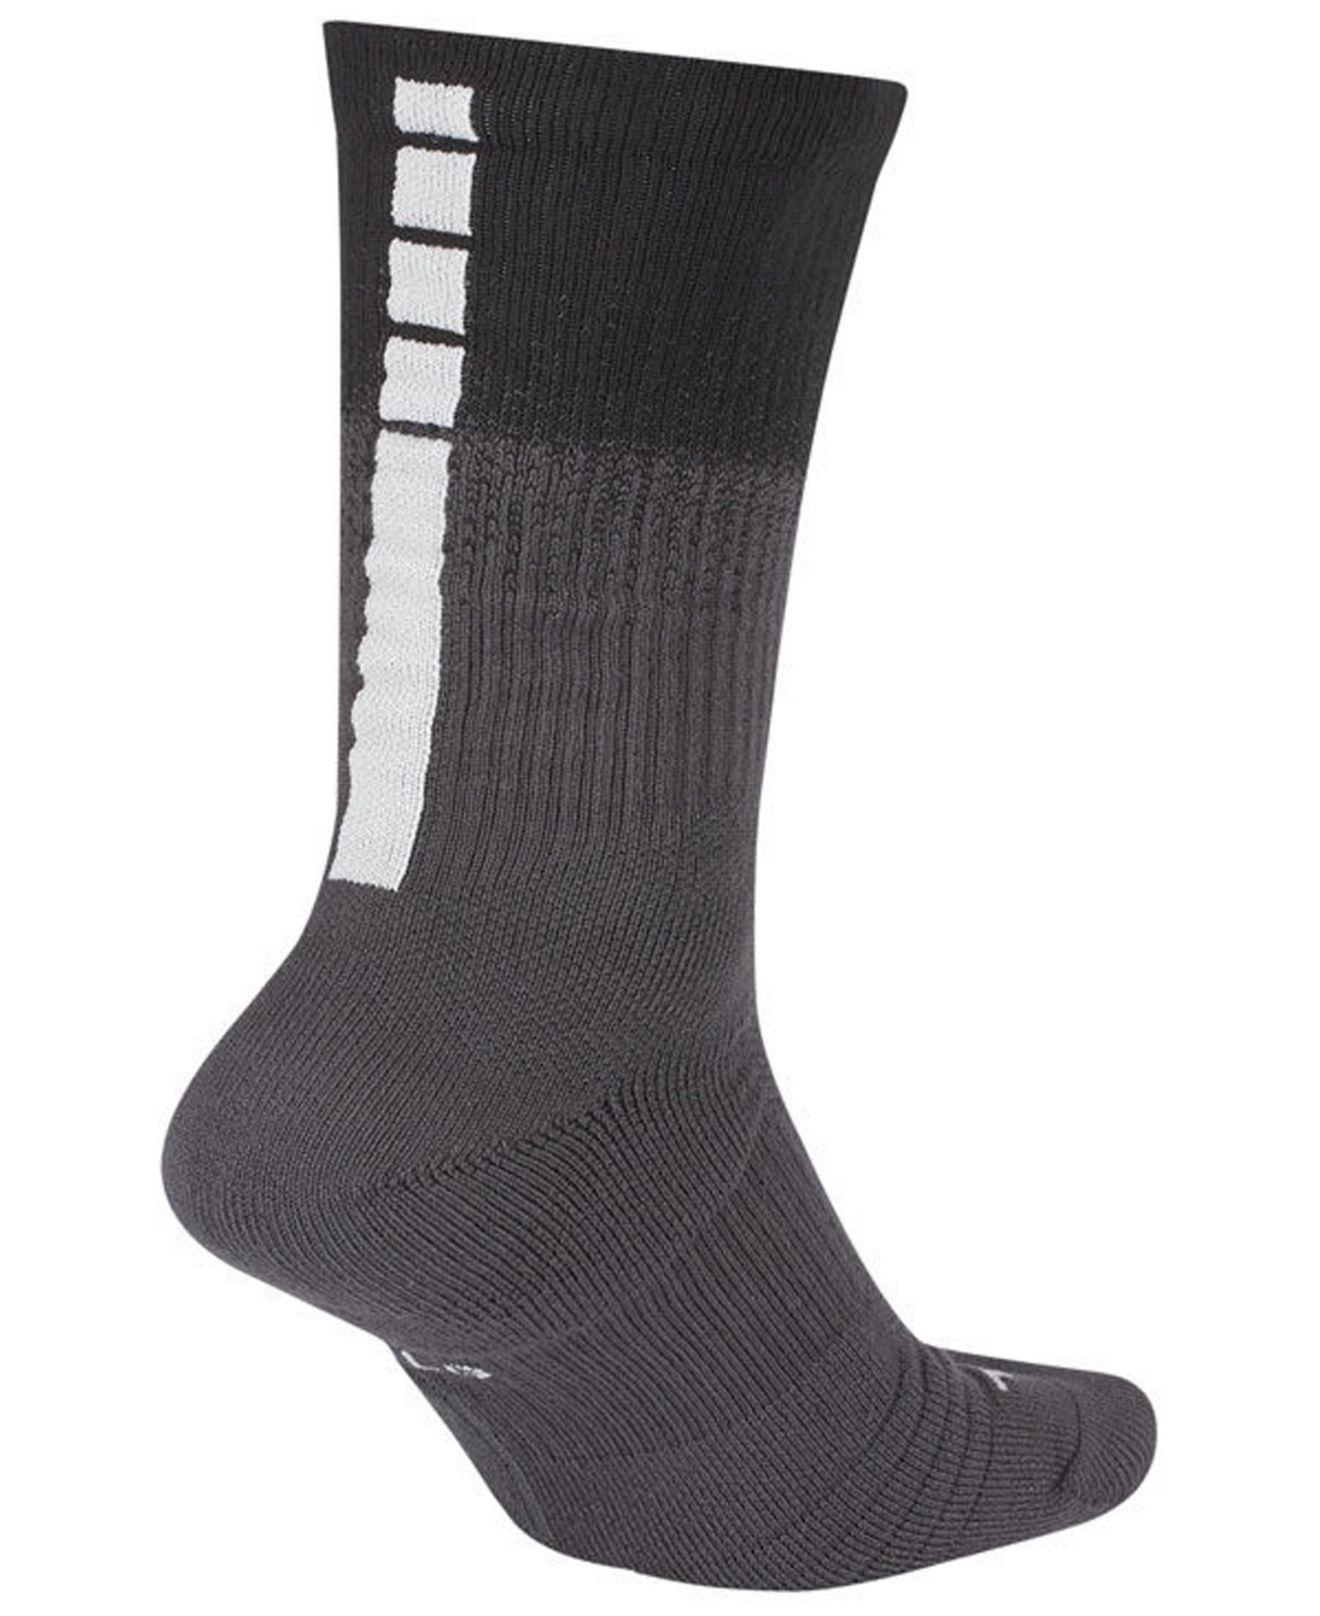 Lyst - Nike Detroit Pistons City Edition Elite Crew Socks in Black for Men 568eeb09b